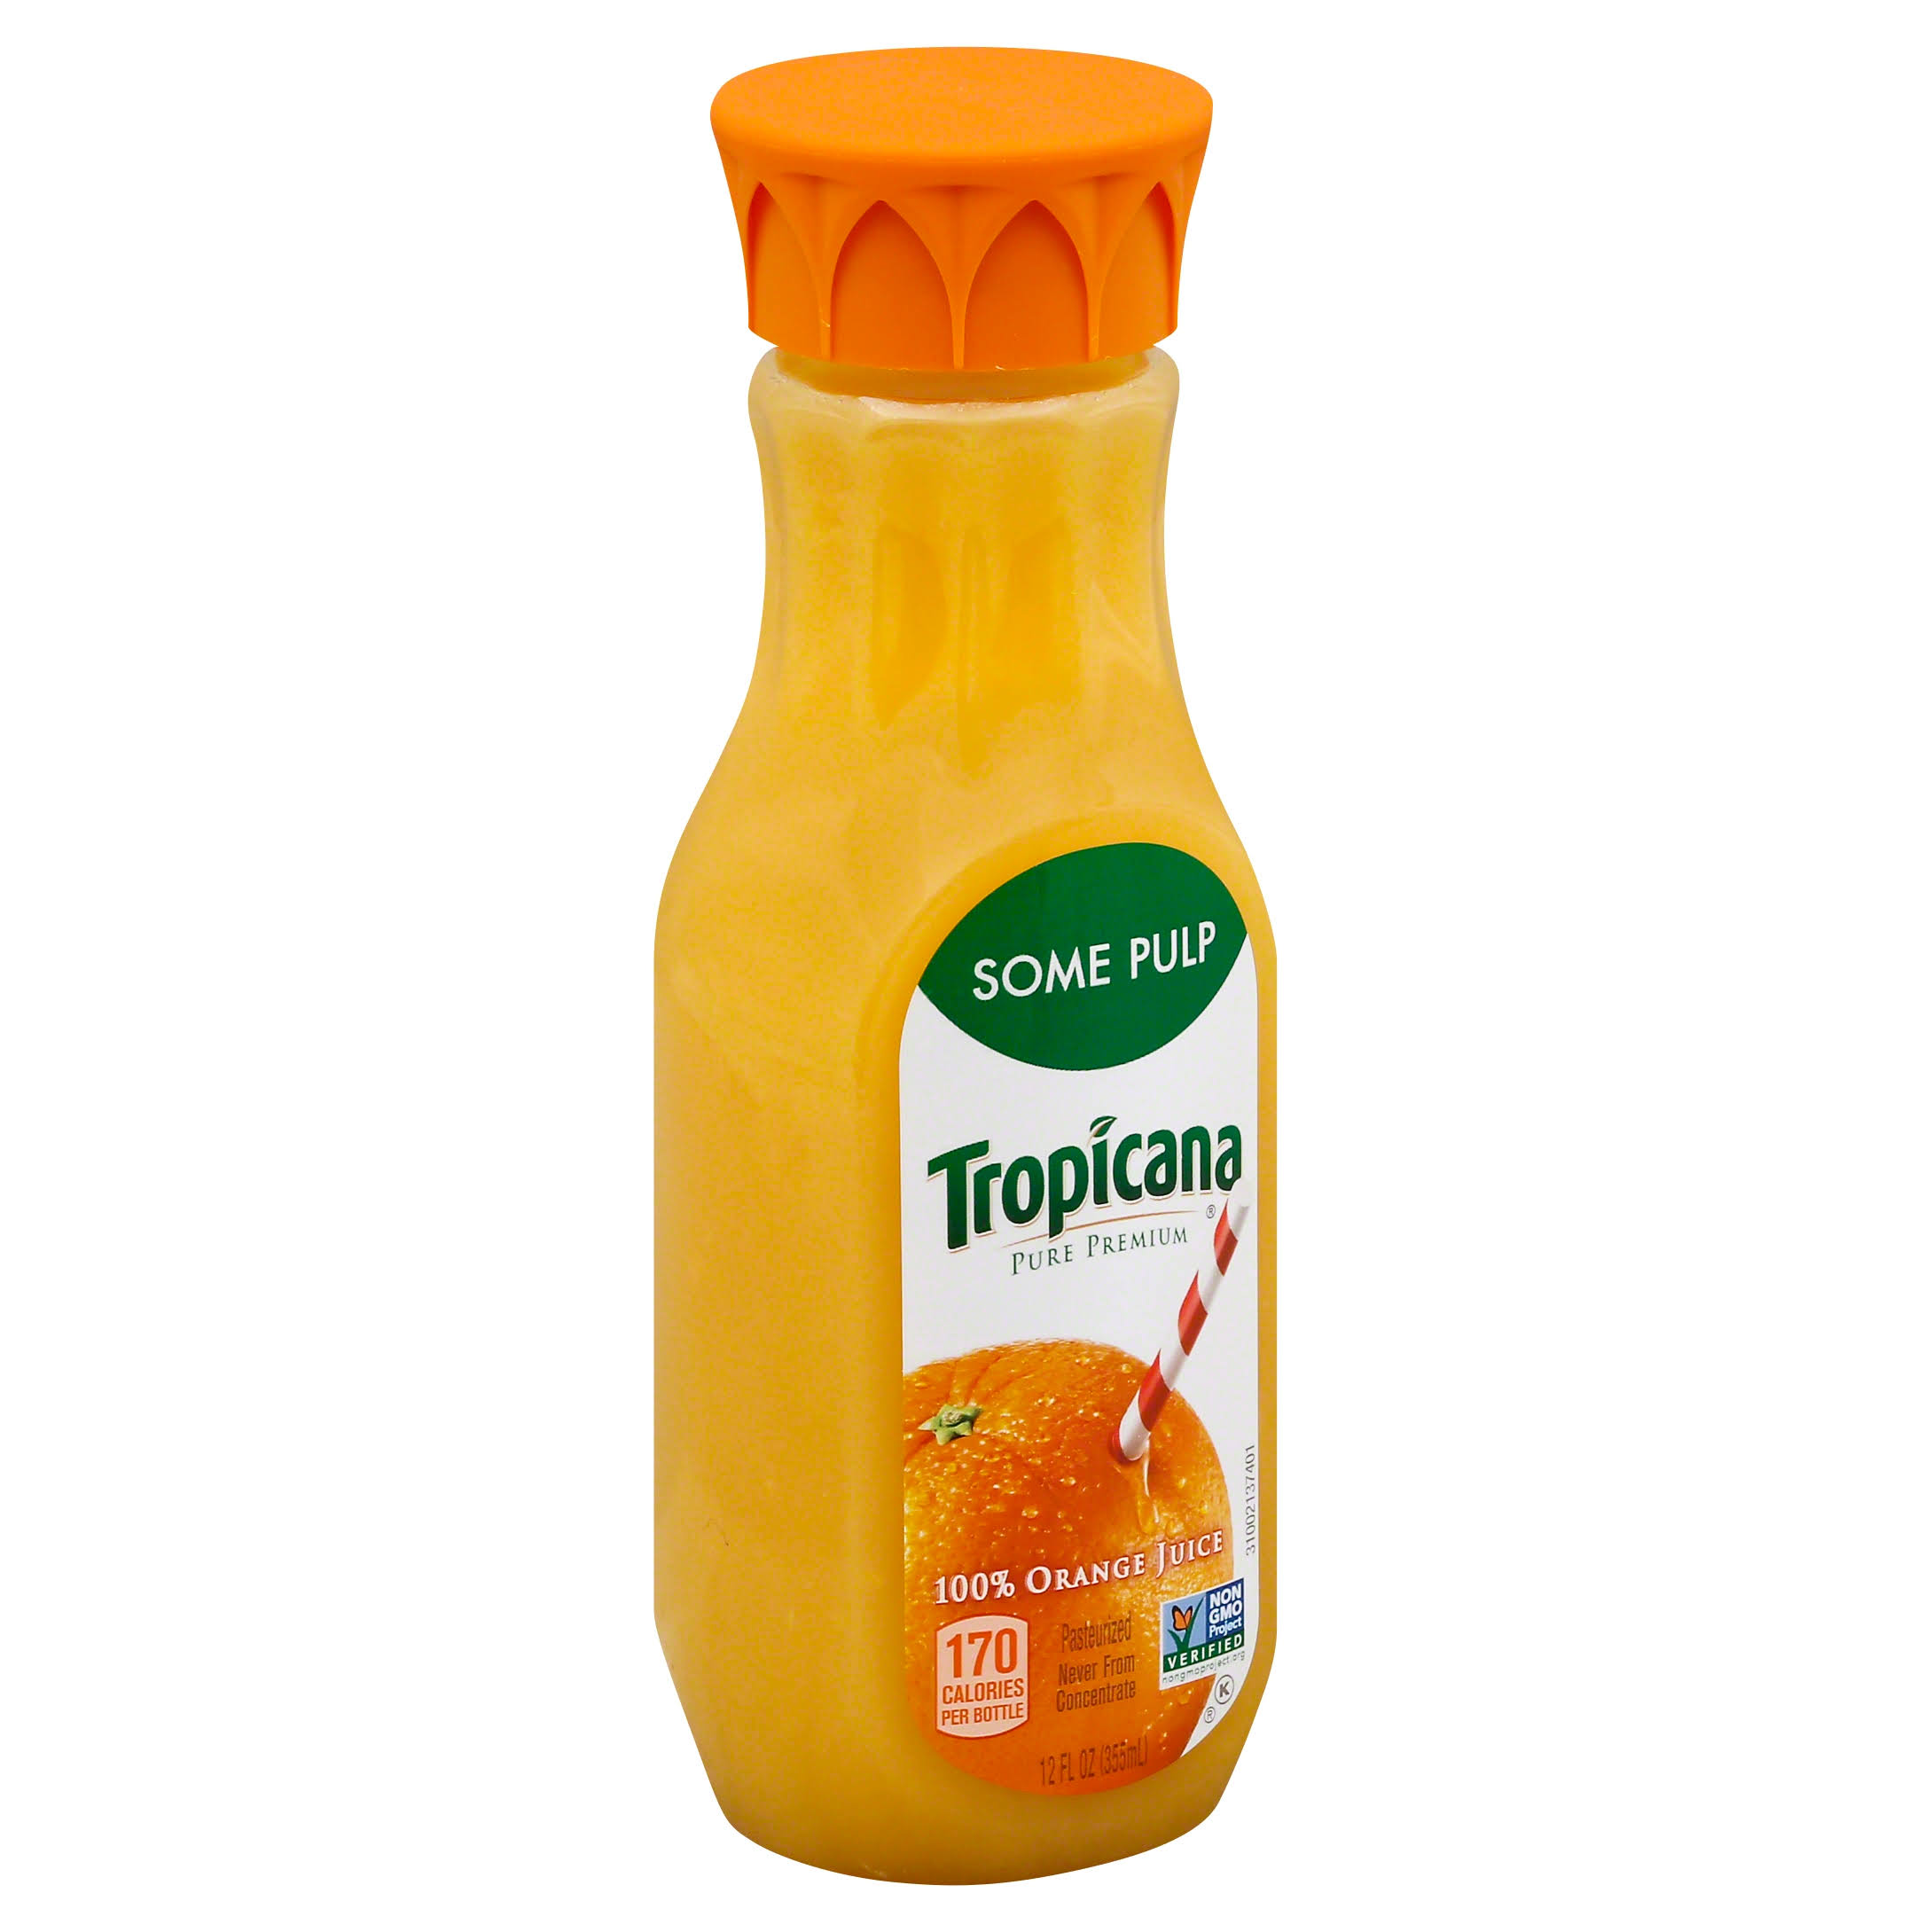 Some Pulp Tropicana Pure Premium Orange Juice - 12oz